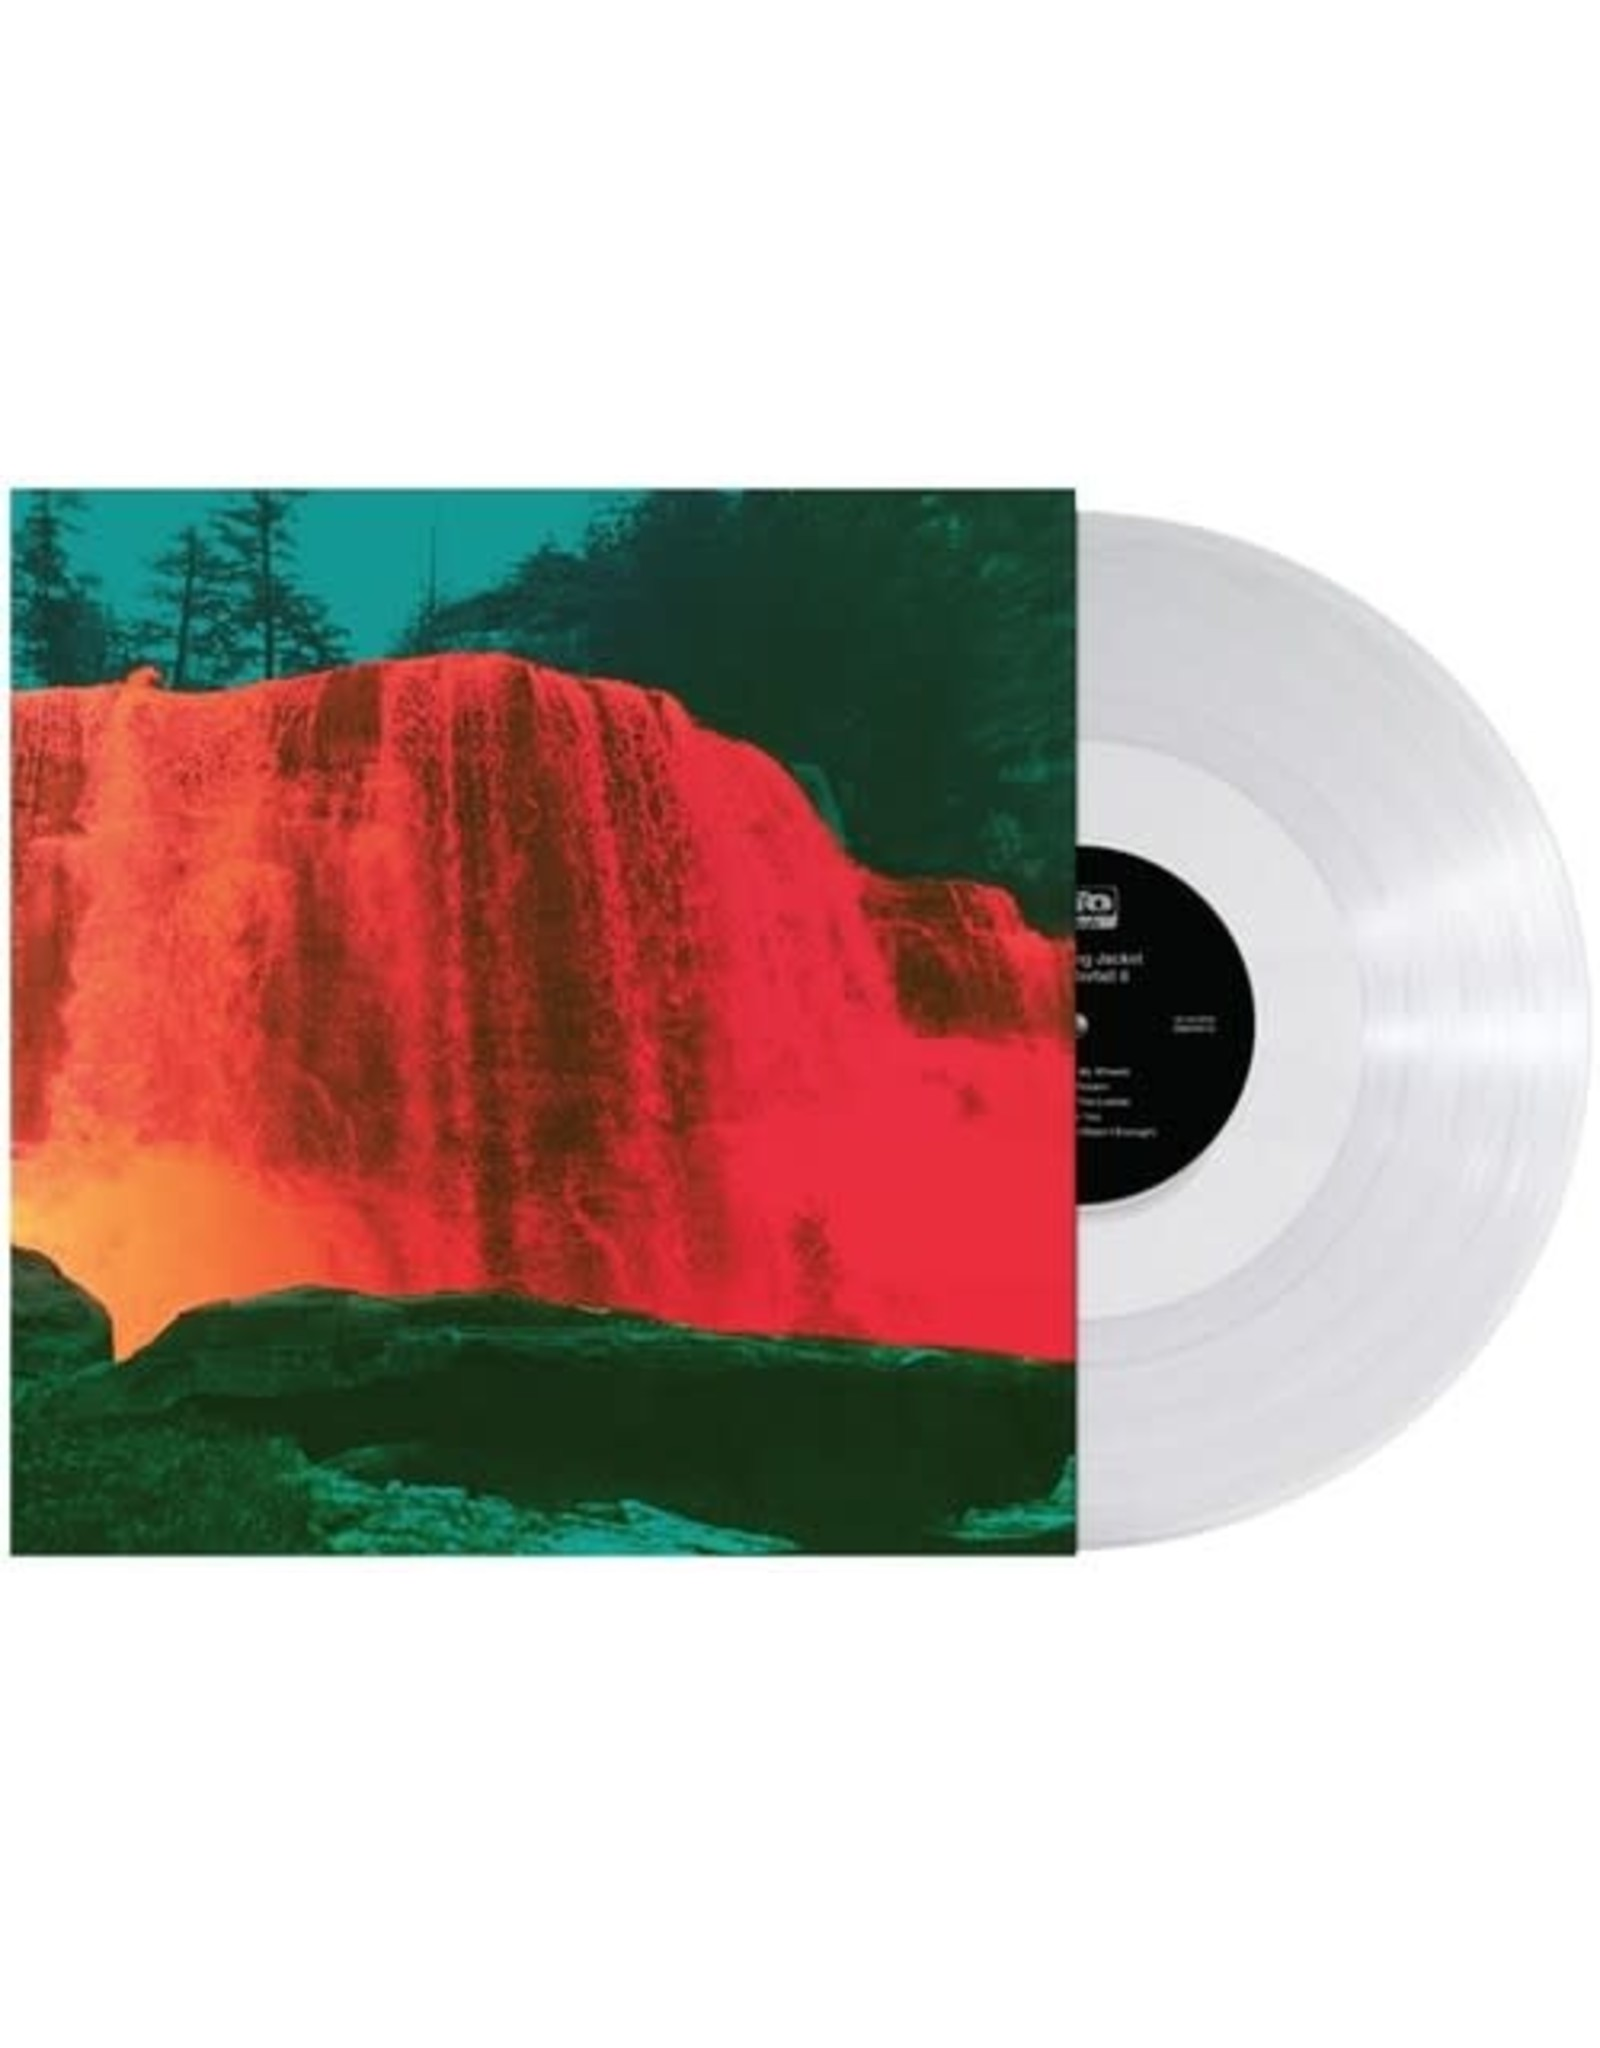 New Vinyl My Morning Jacket - The Waterfall II (Clear) LP